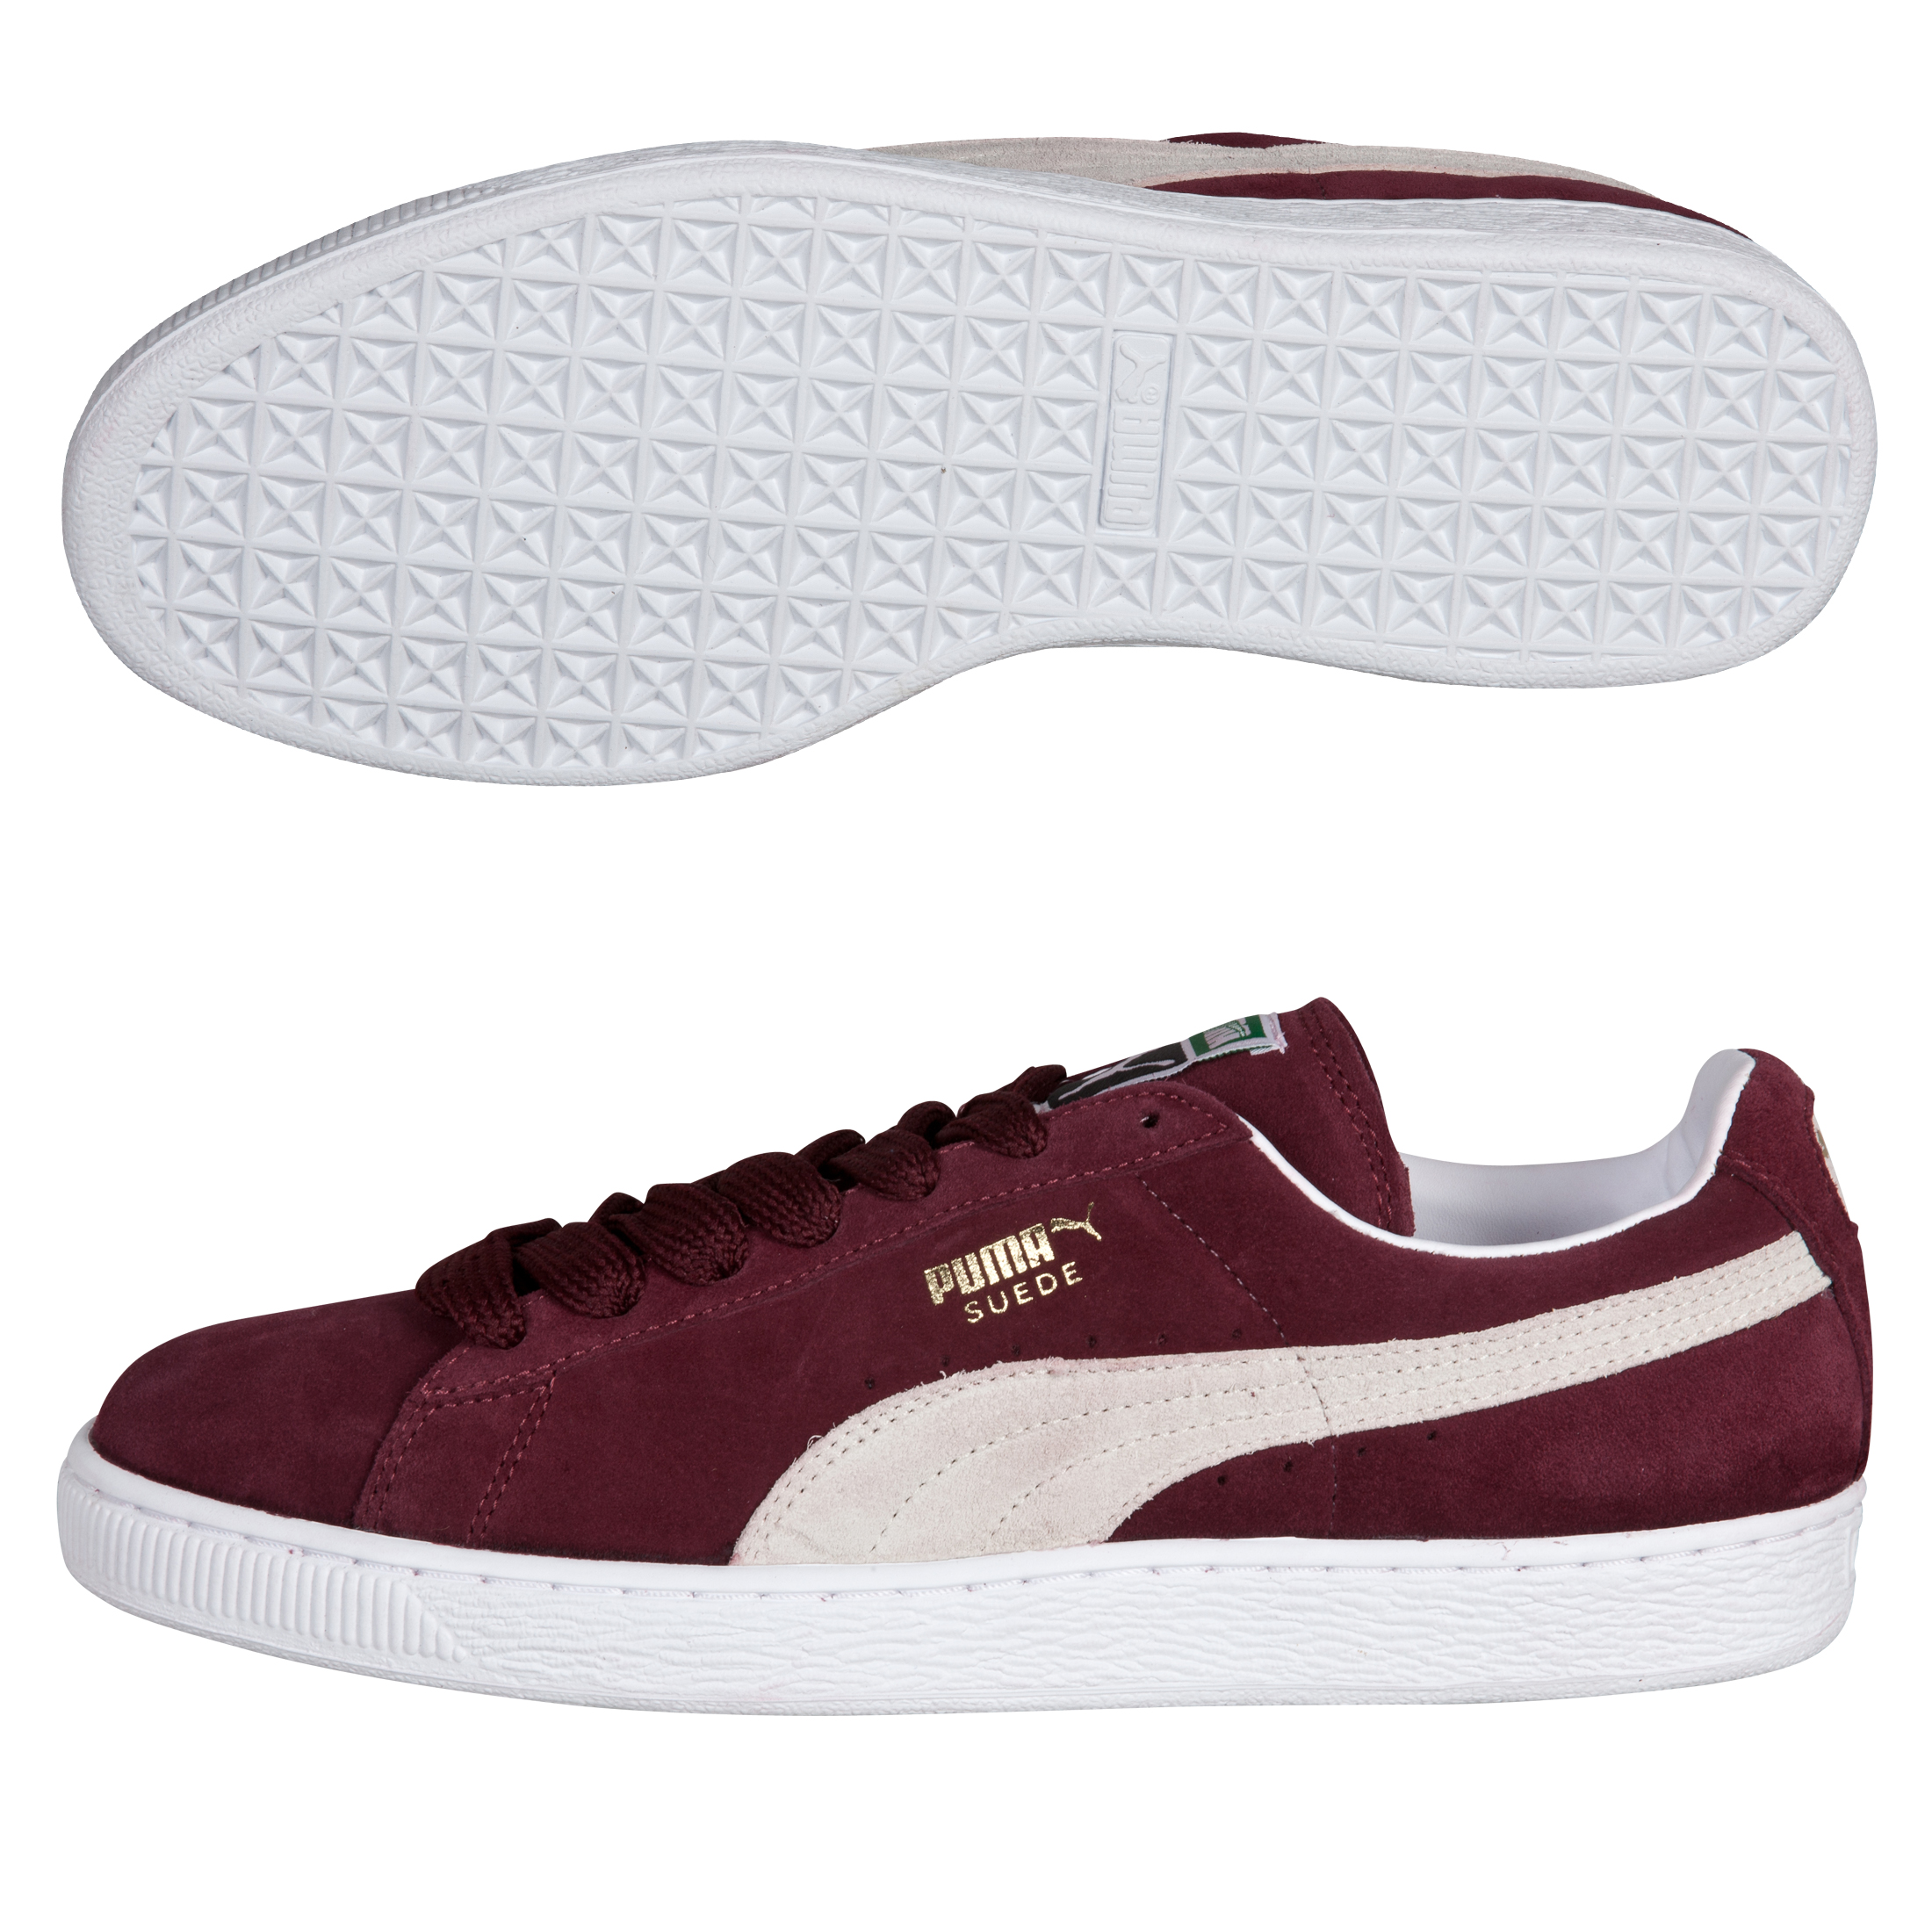 Puma Suede Classic - Team Burgundy/White/Team Gold